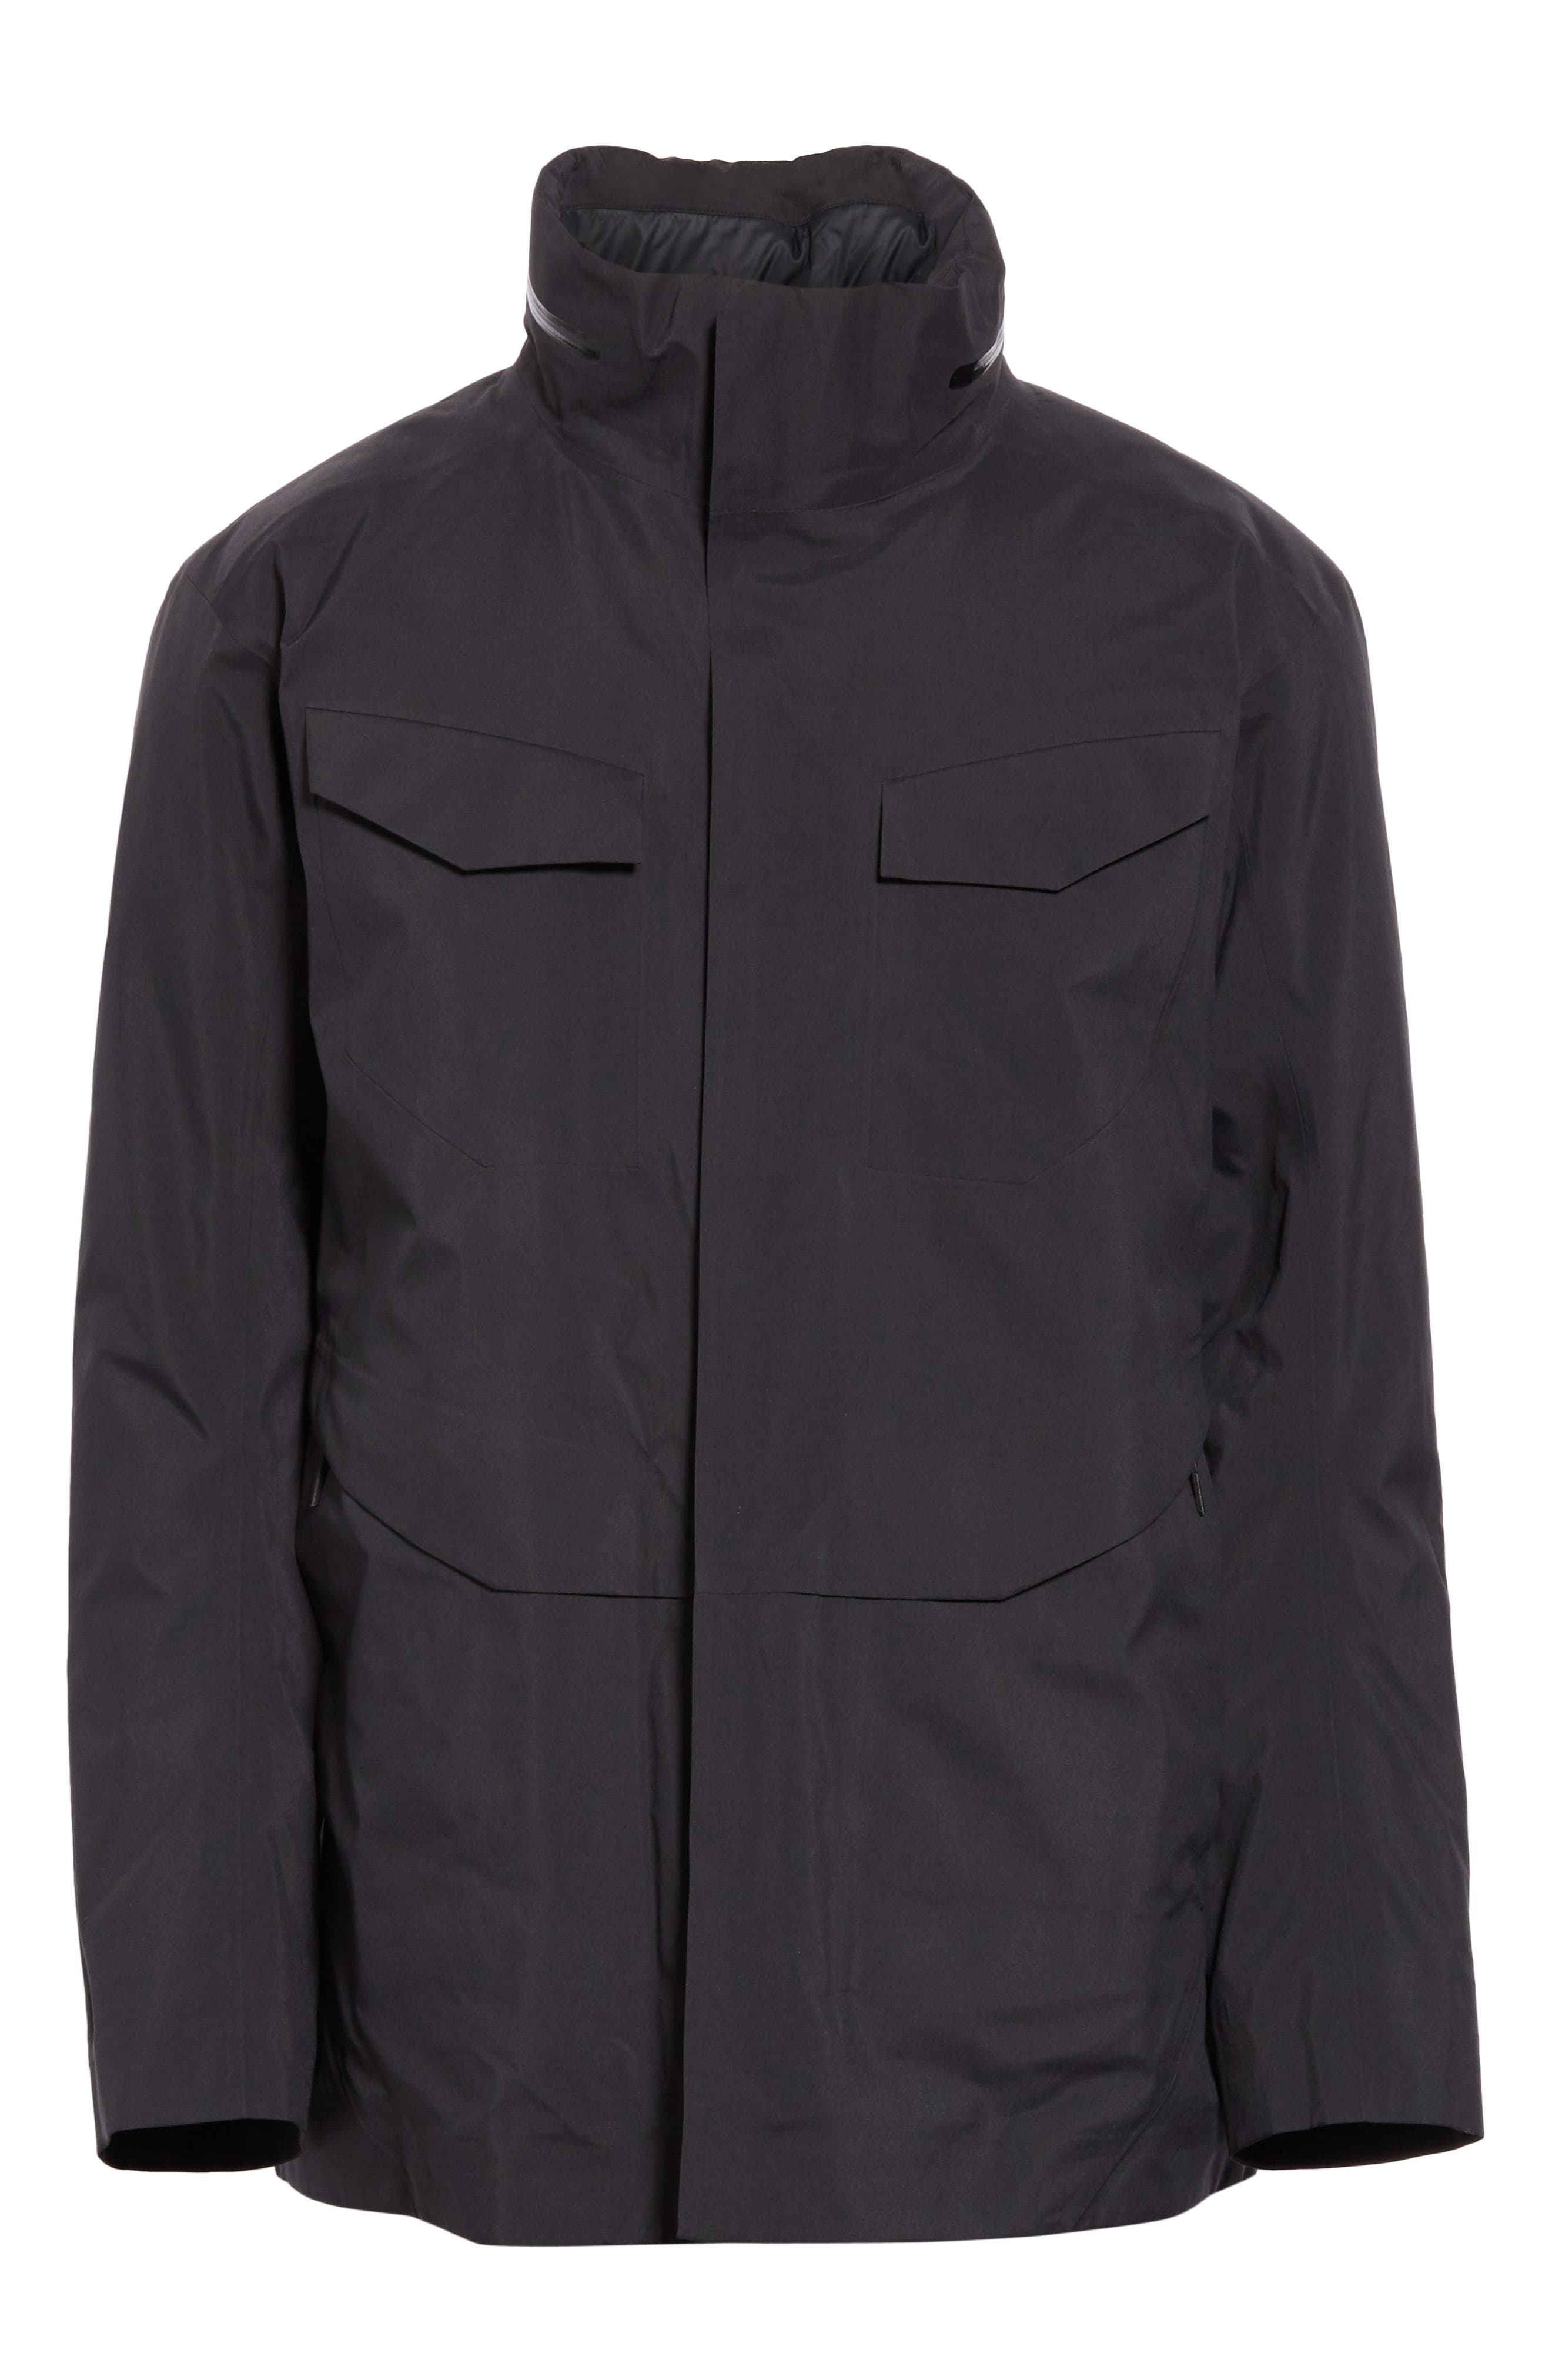 Gore-Tex<sup>®</sup> Pro Waterproof/Windproof Insulated Field Jacket, Main, color, BLACK